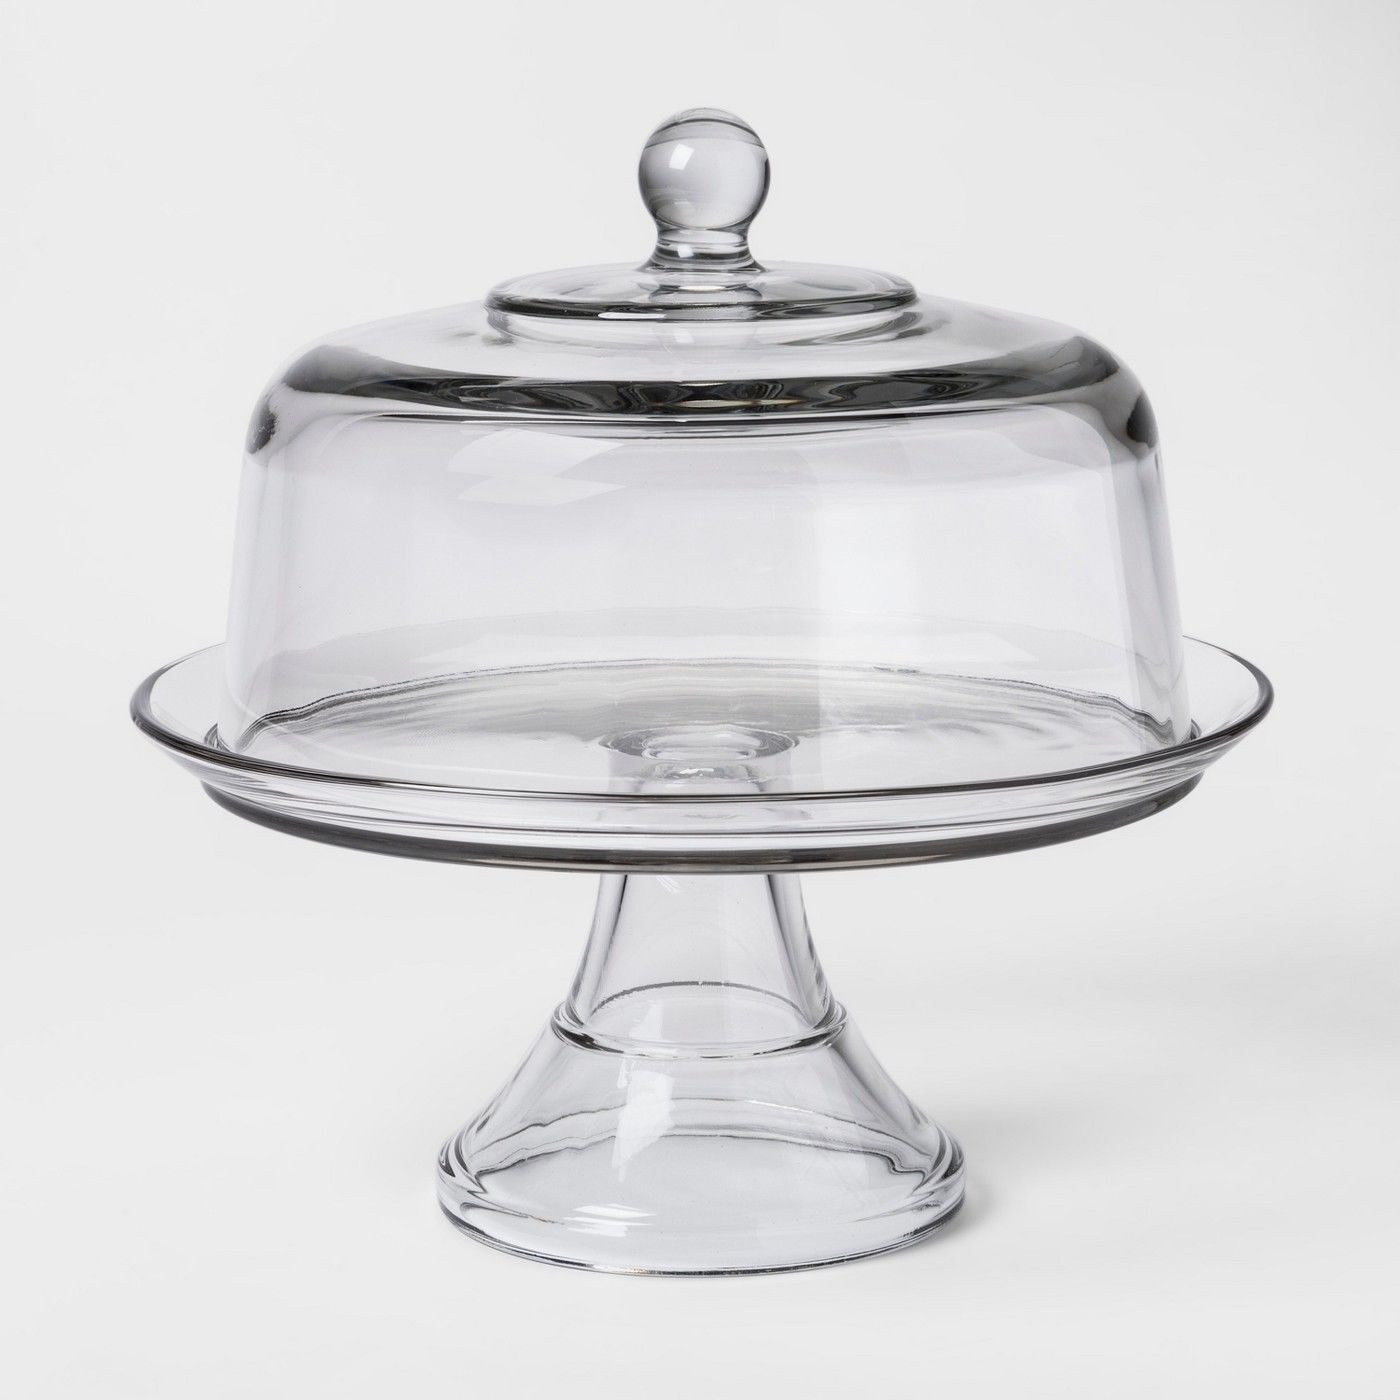 Cake Stands 177010 Classic Glass Cake Stand With Dome